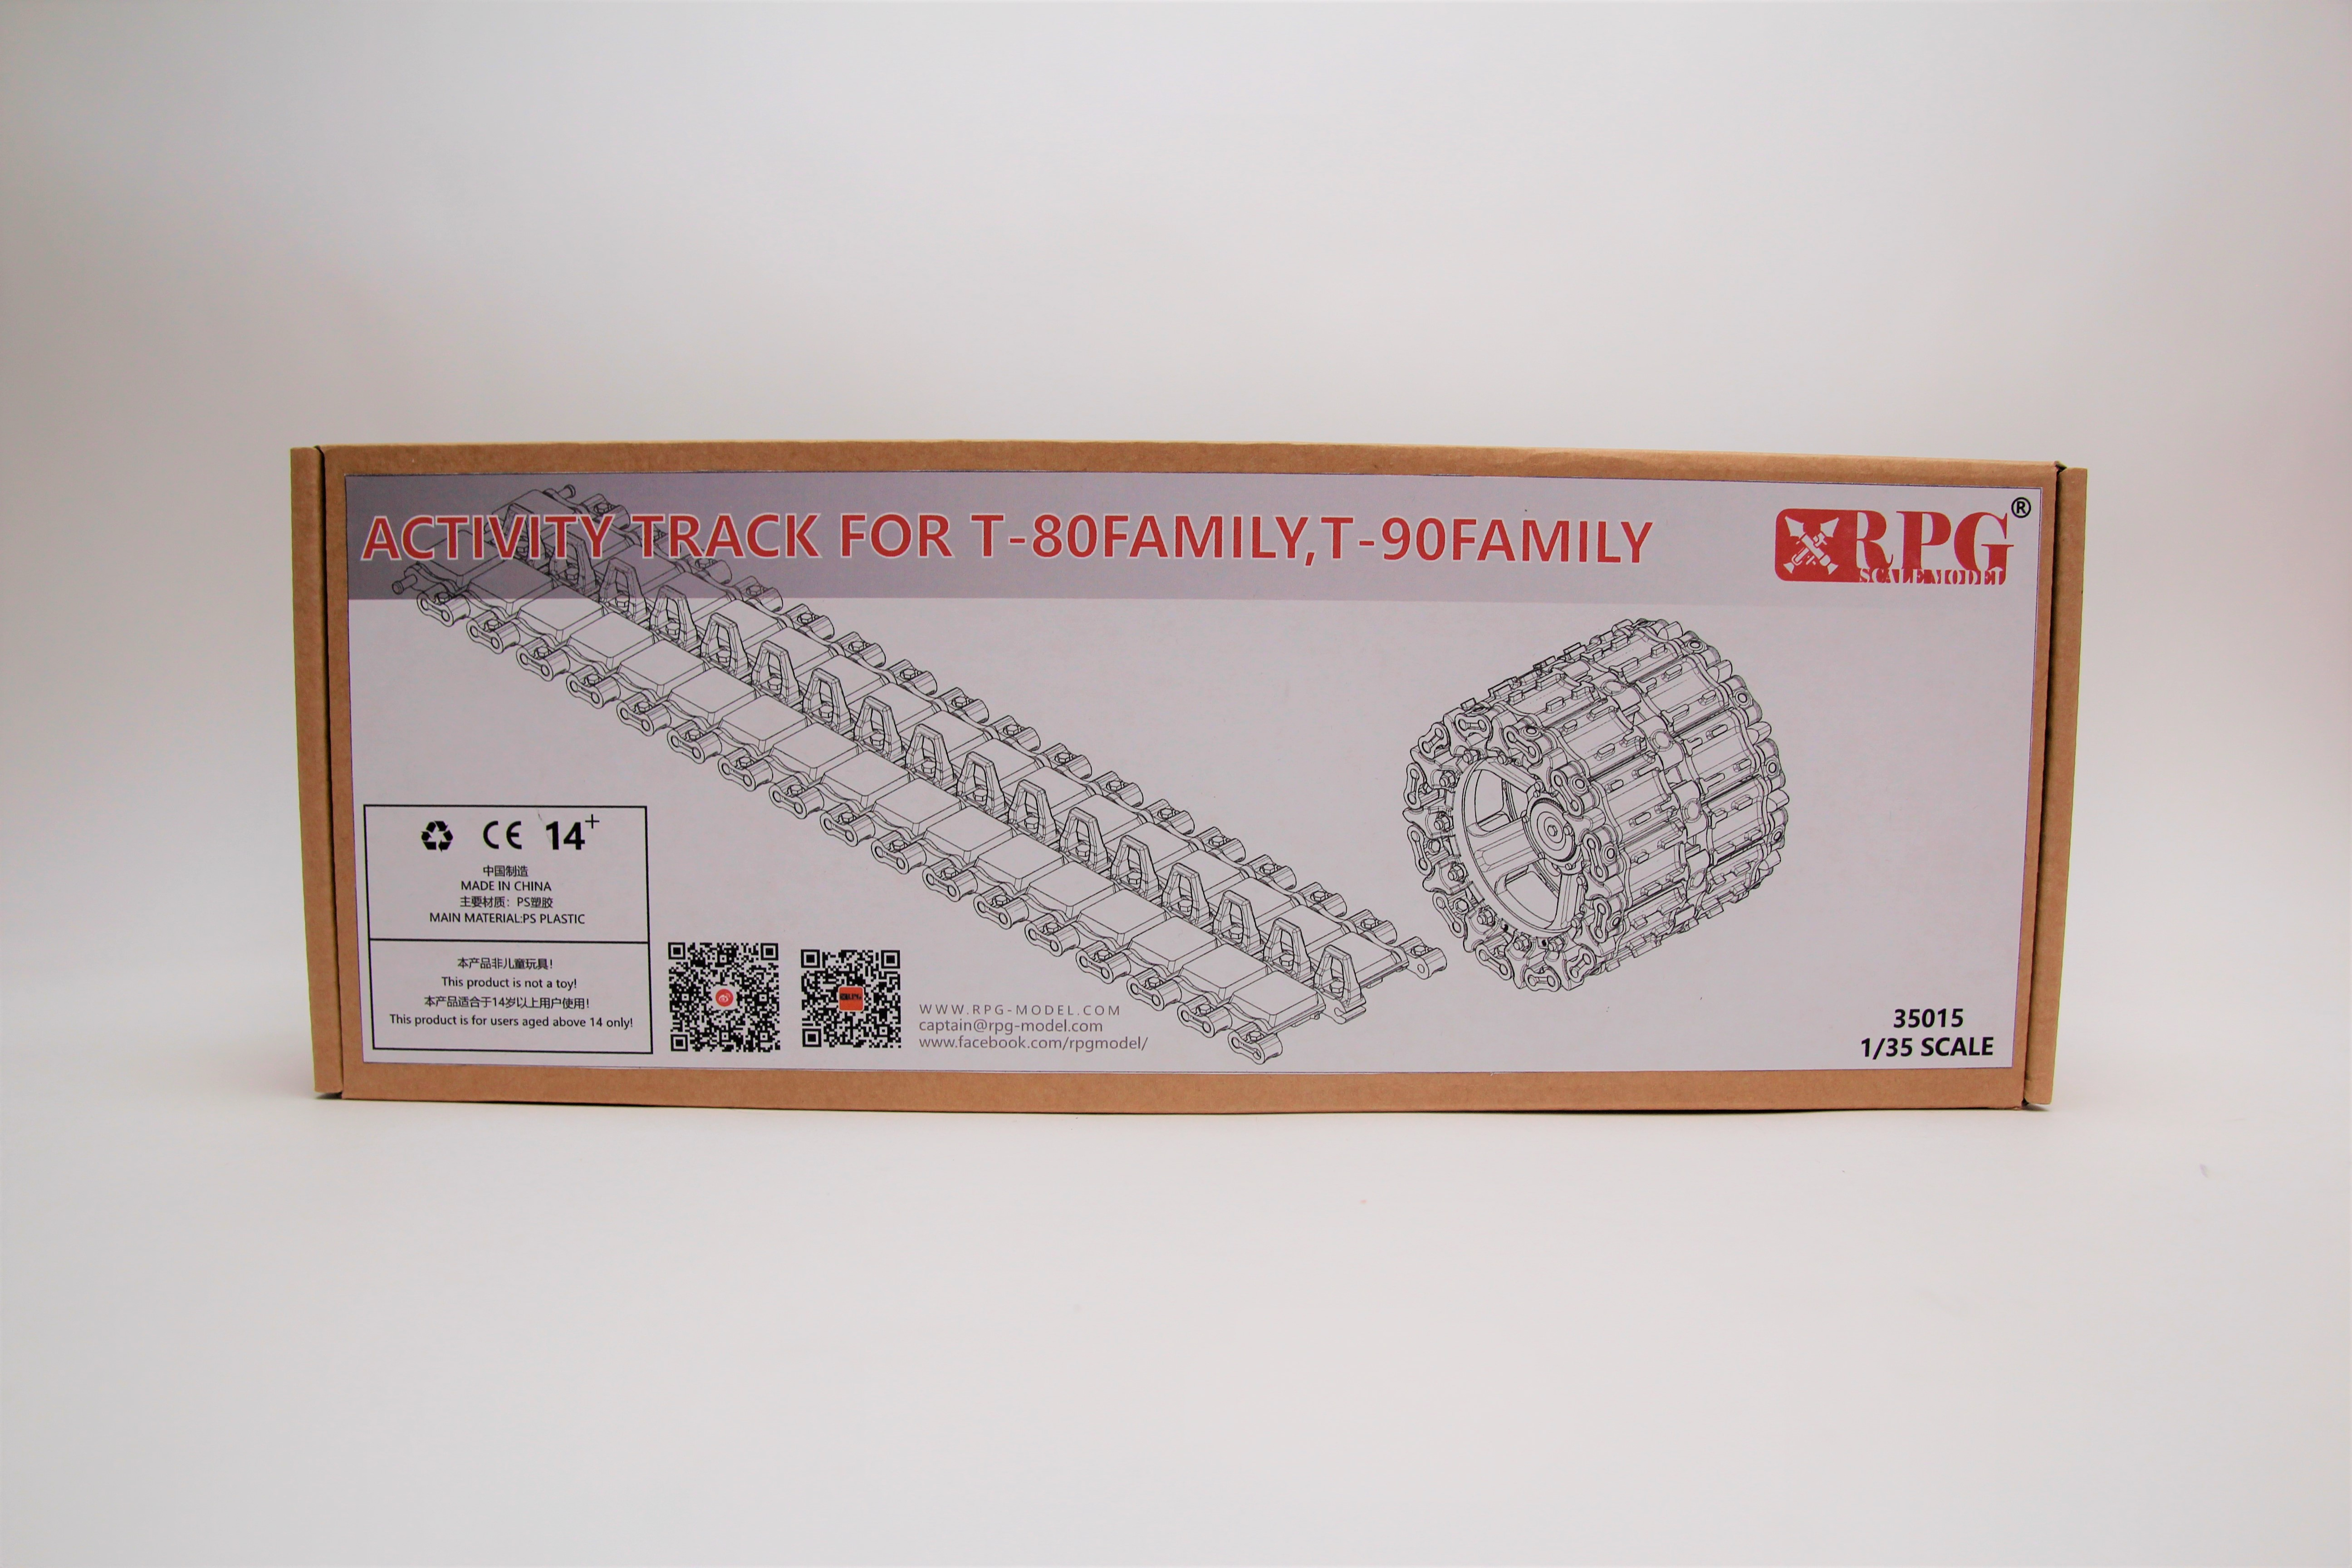 RPG 1/35 Activity track for T-80 family, T-90 family